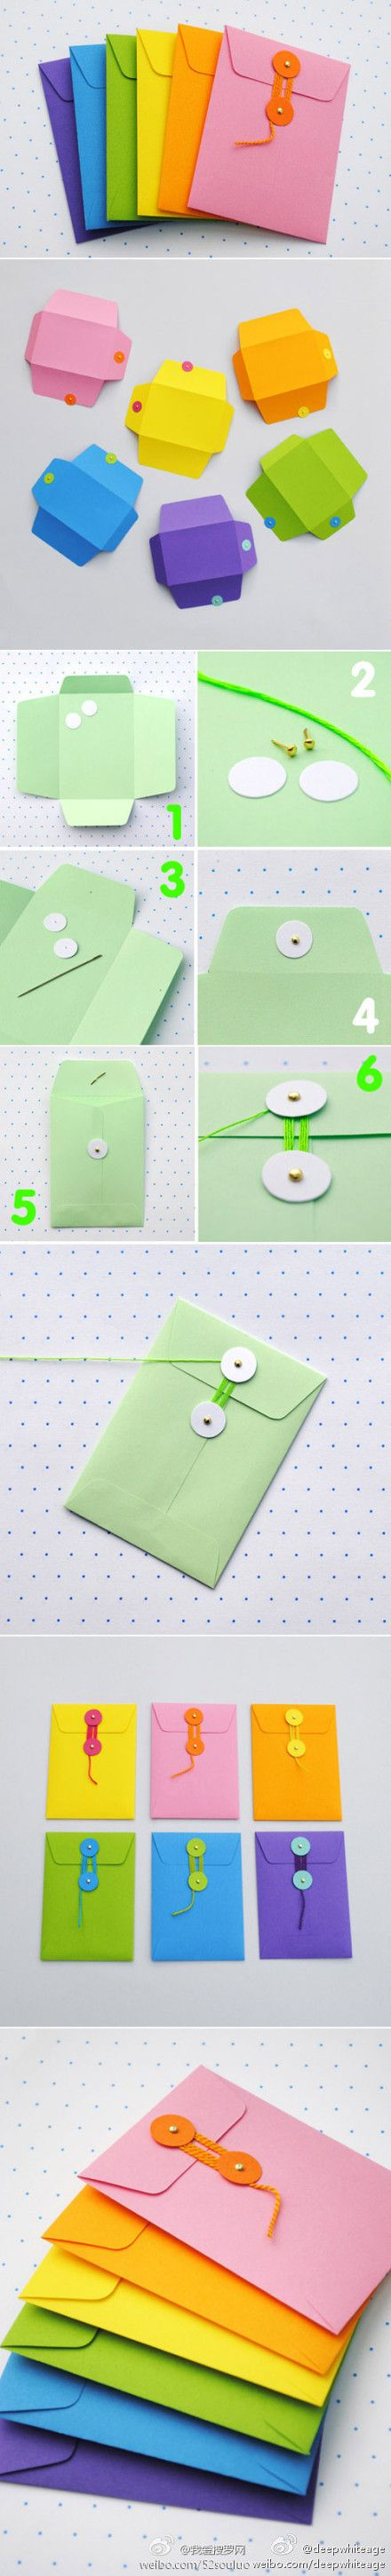 DIY string tie envelopes. Tutorial here: http://www.minieco.co.uk/diy-string-tie-envelopes/